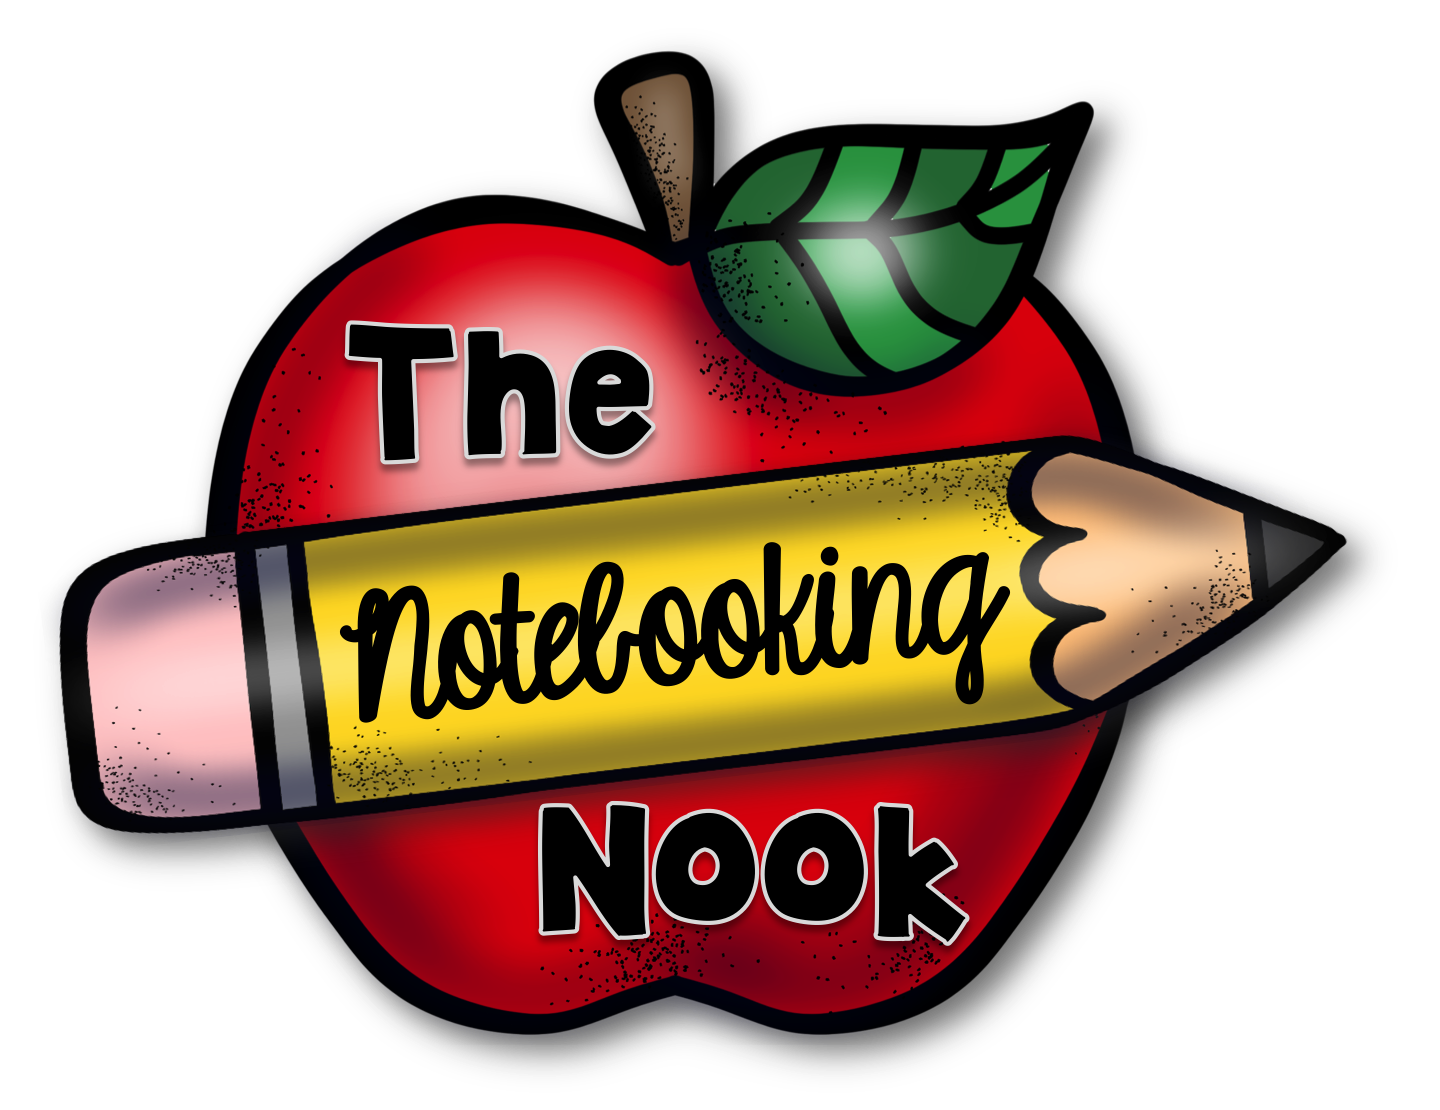 Book nook clipart jpg royalty free Notebooking | Notebooking Nook jpg royalty free